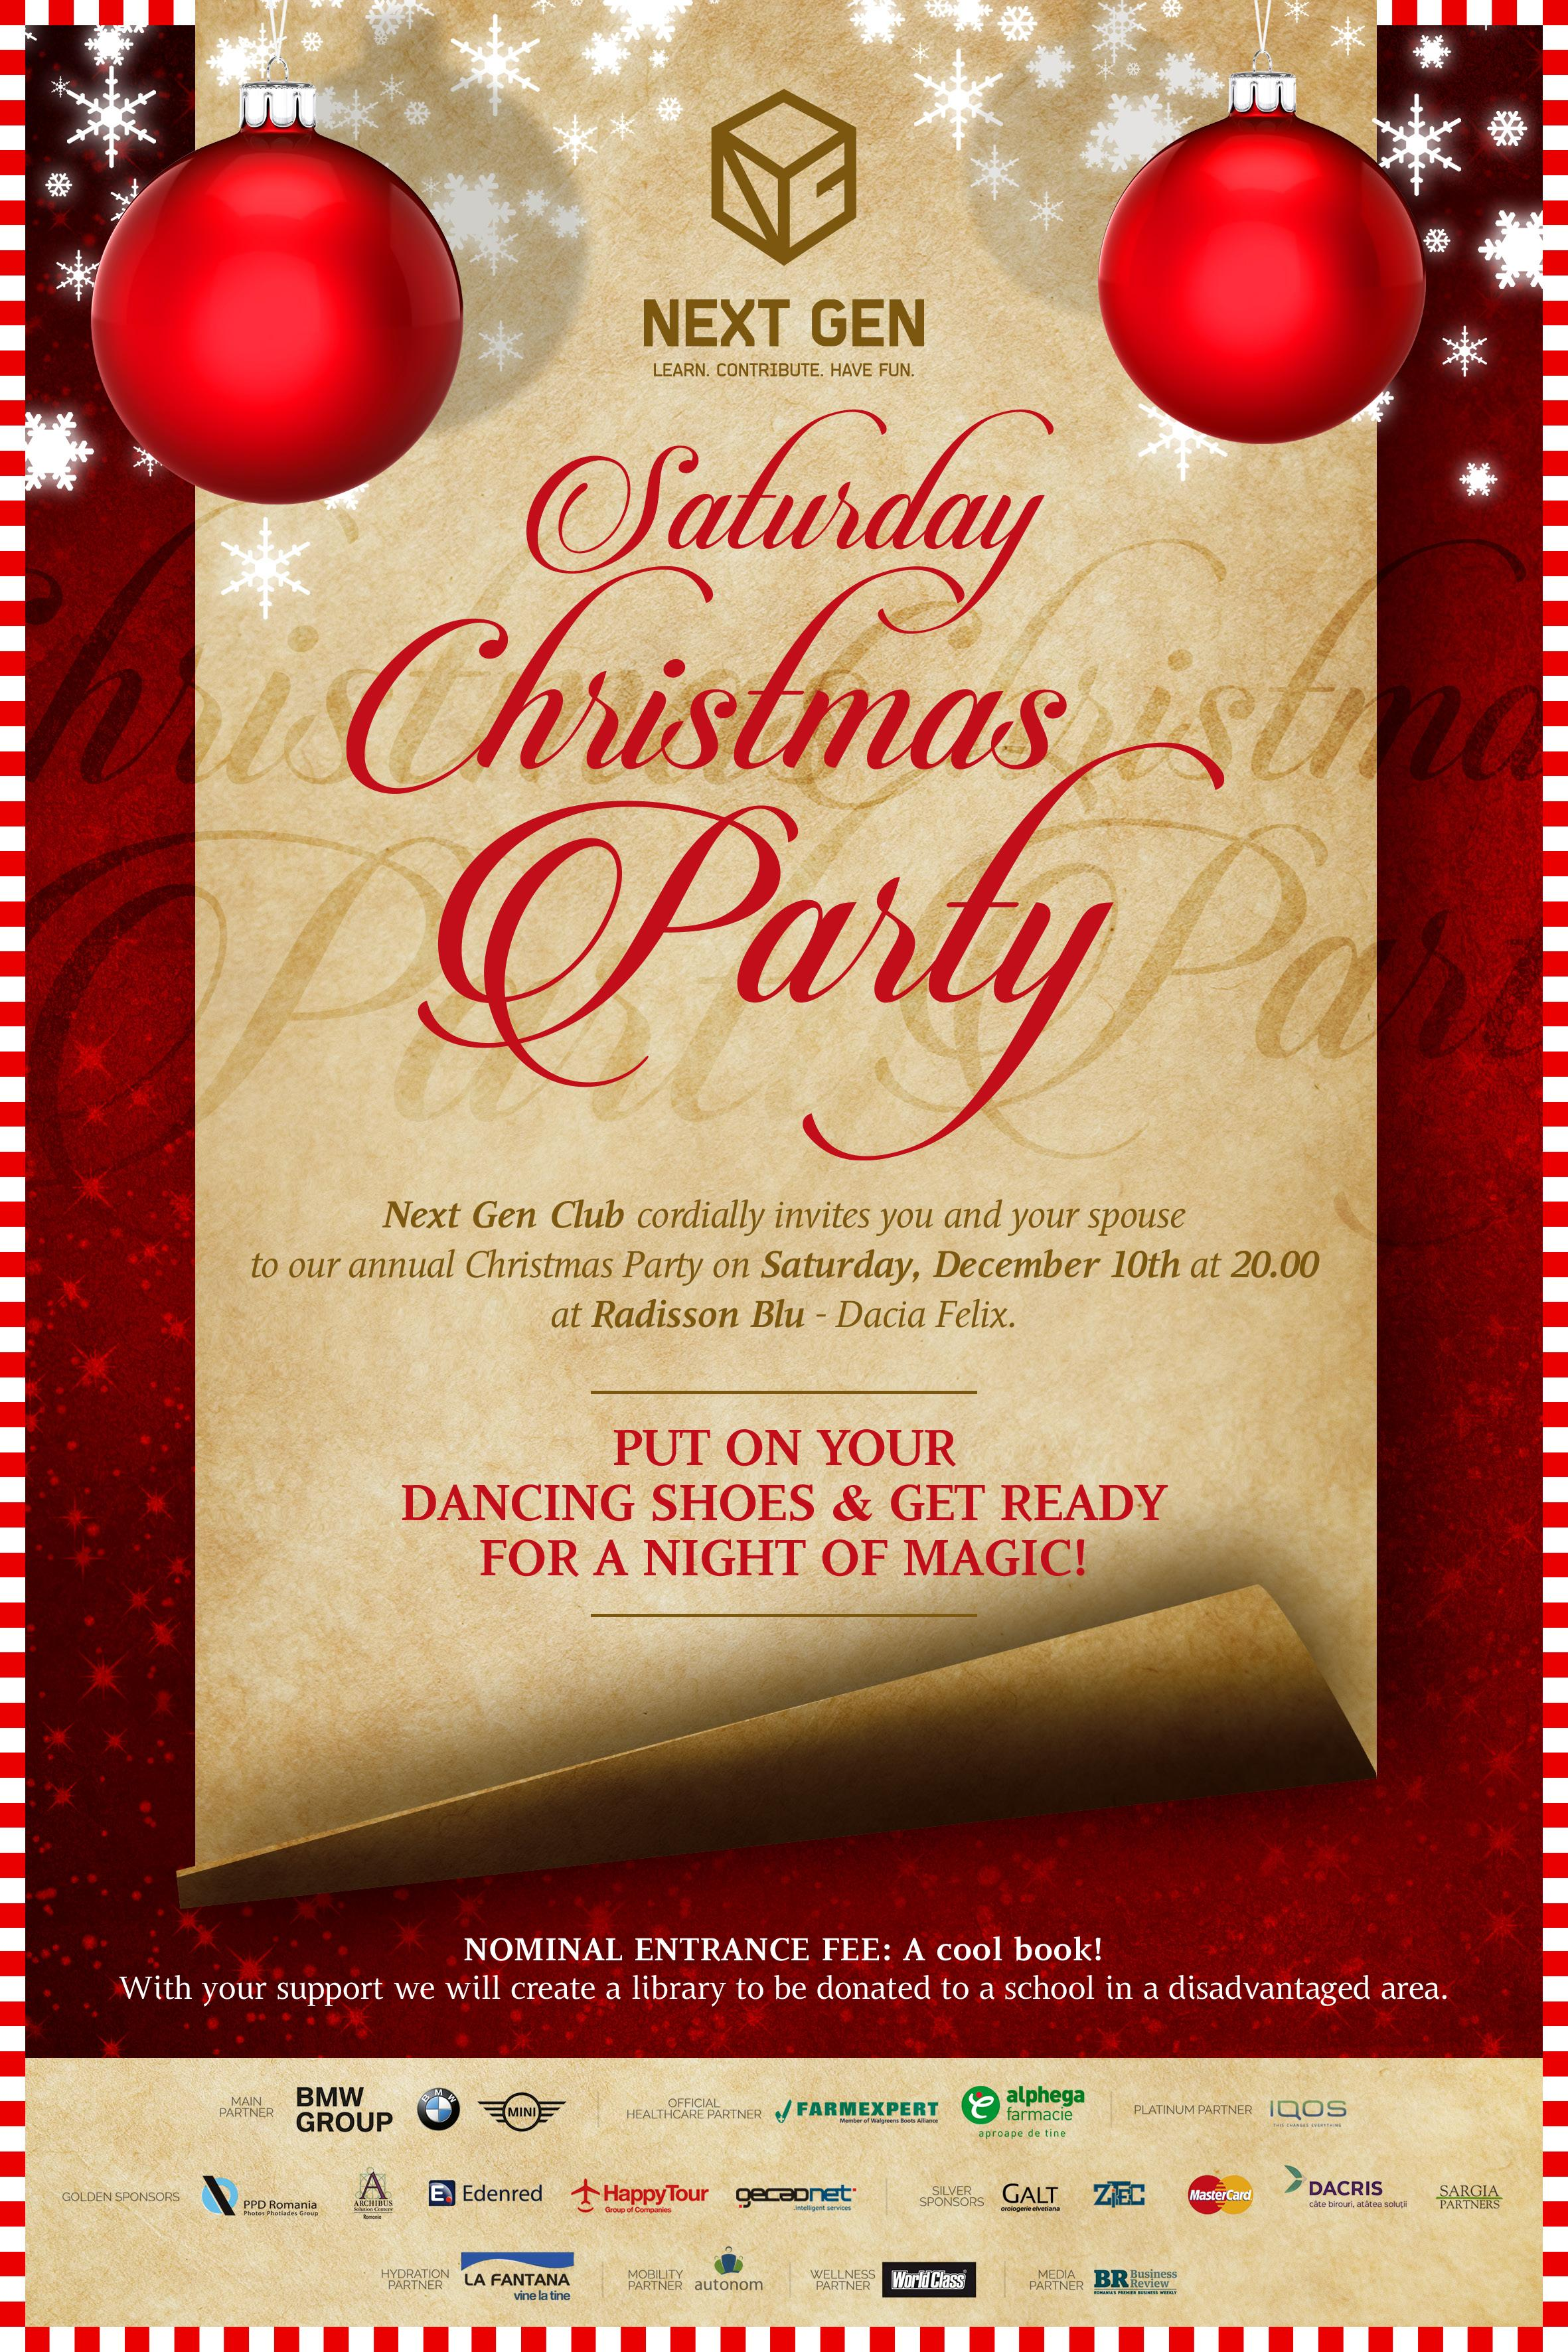 Saturday Christmas Party